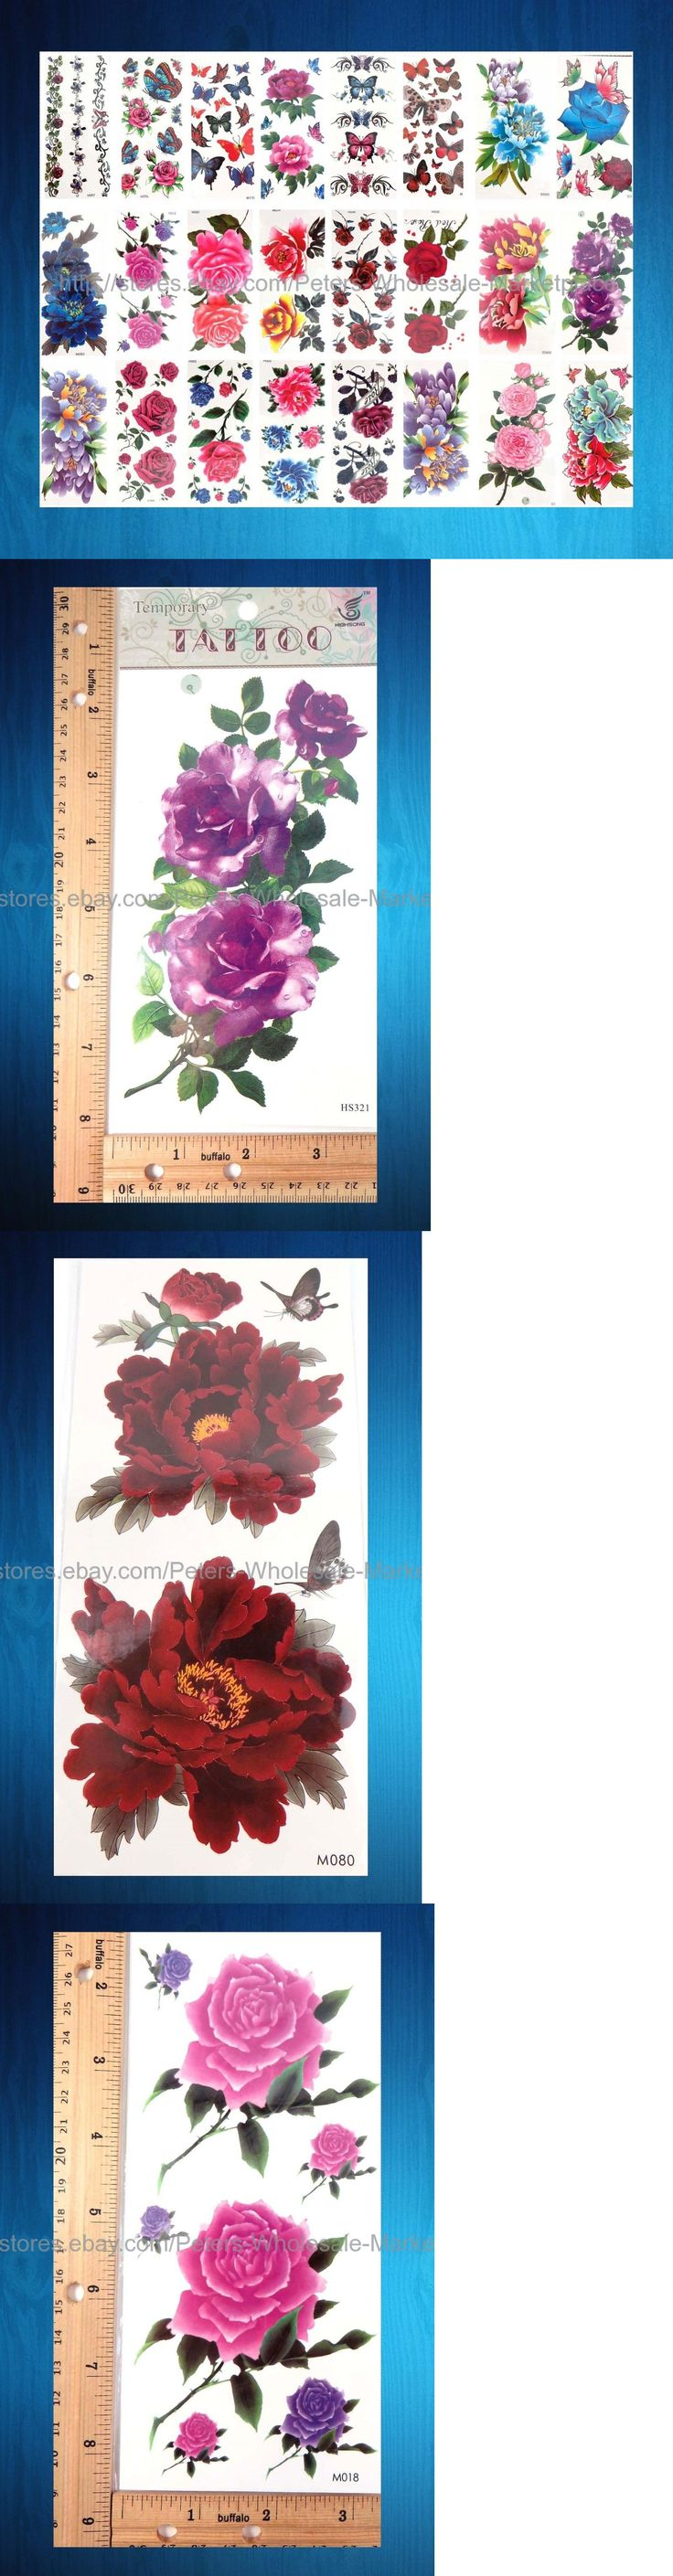 Temporary Tattoos: 100 Sheets Large Flower Rose Peony Temporary Tattoo Tribal Temporary Tattoos BUY IT NOW ONLY: $59.75